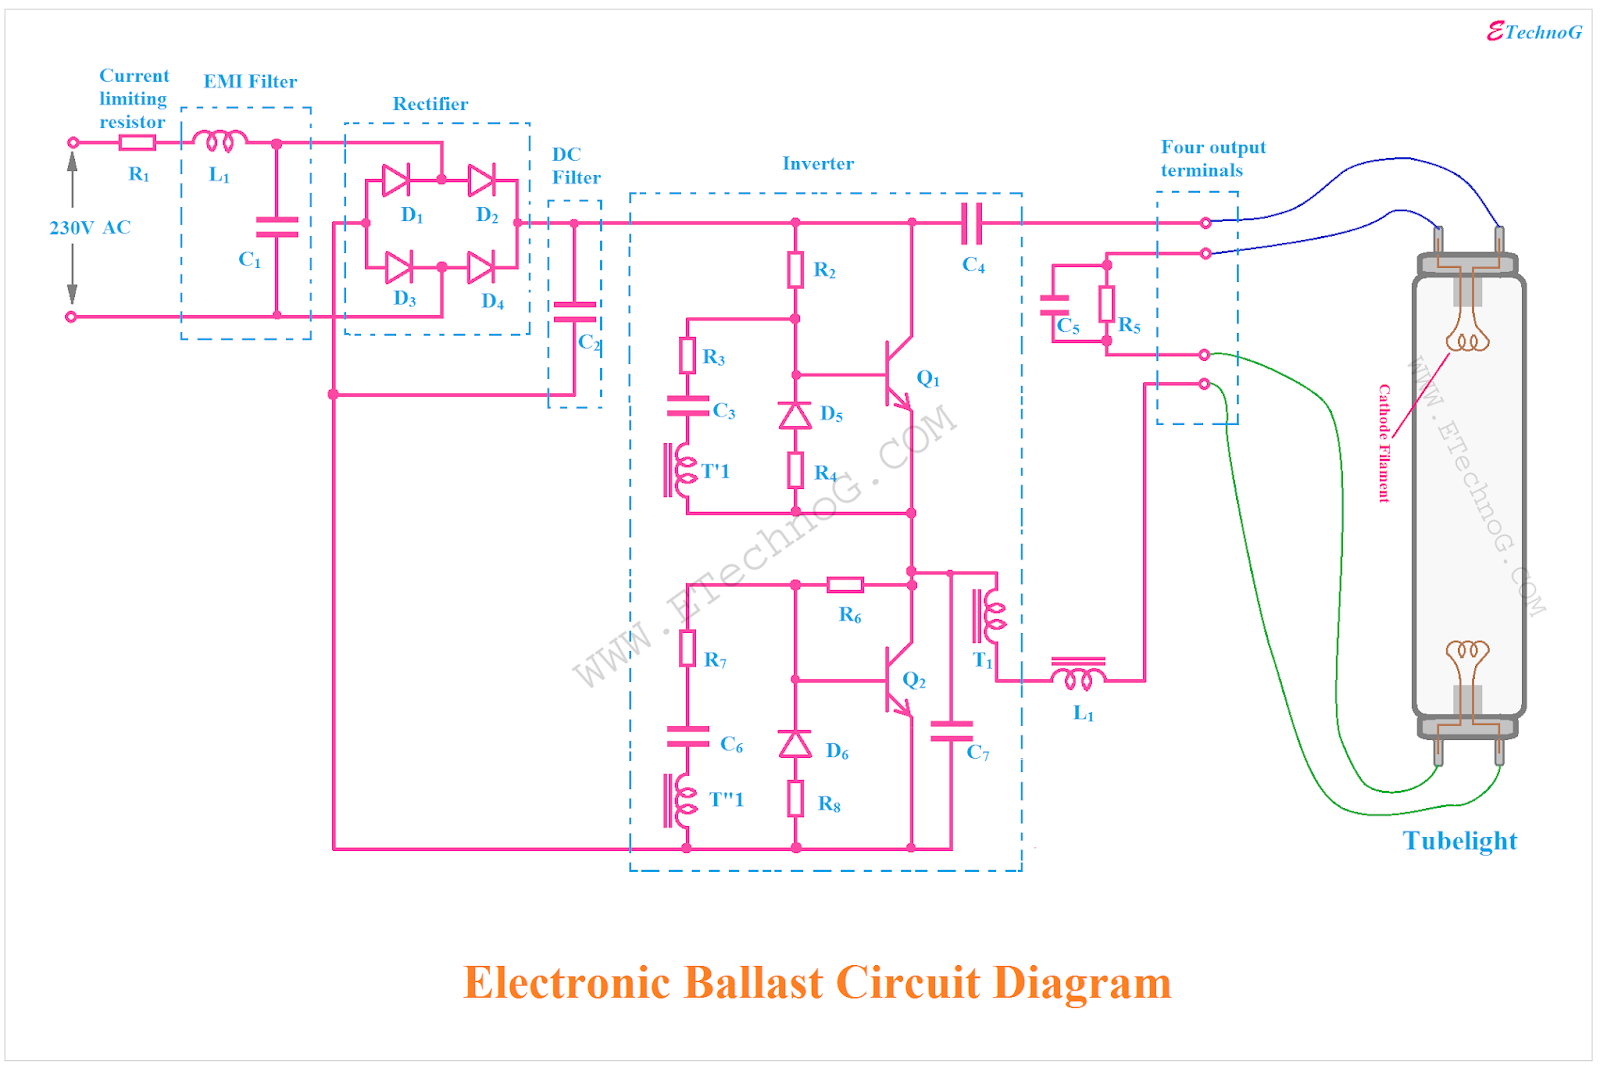 explained electronic ballast circuit diagram and working etechnog electronic ballast circuit diagram on electronic choke circuit diagram [ 1600 x 1076 Pixel ]